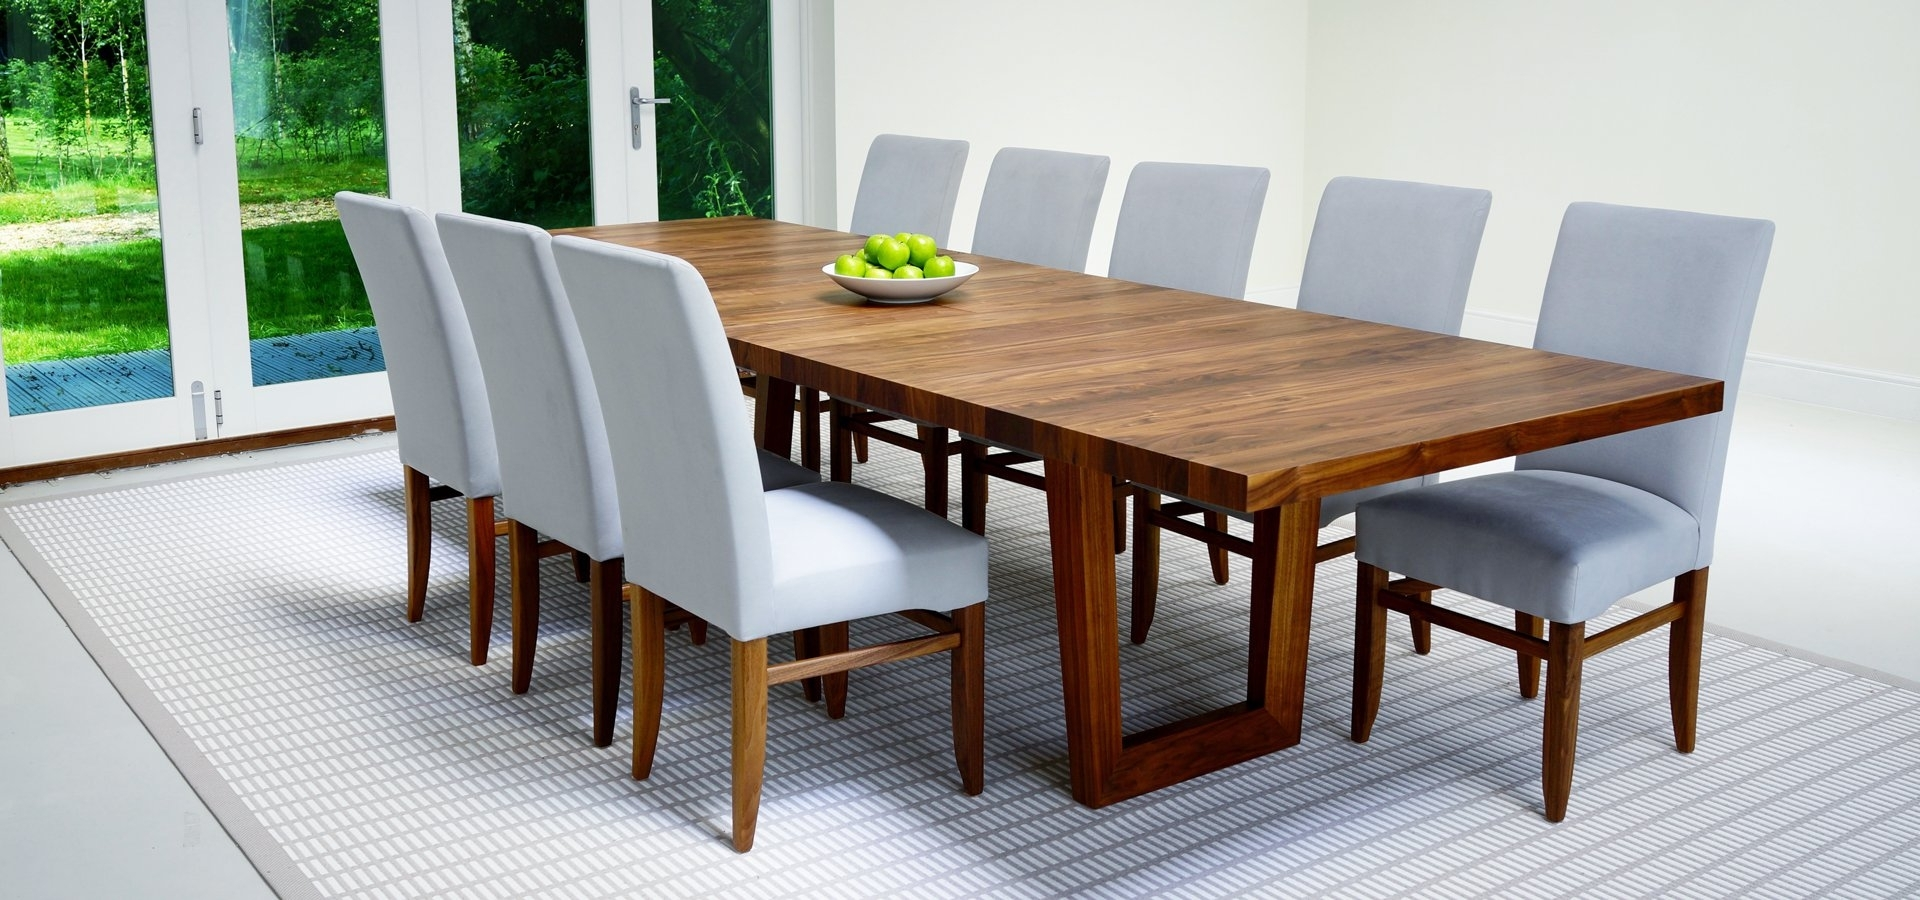 Most Current Walnut Dining Tables And Chairs With Regard To Walnut Dining Table Sets – Castrophotos (View 11 of 25)